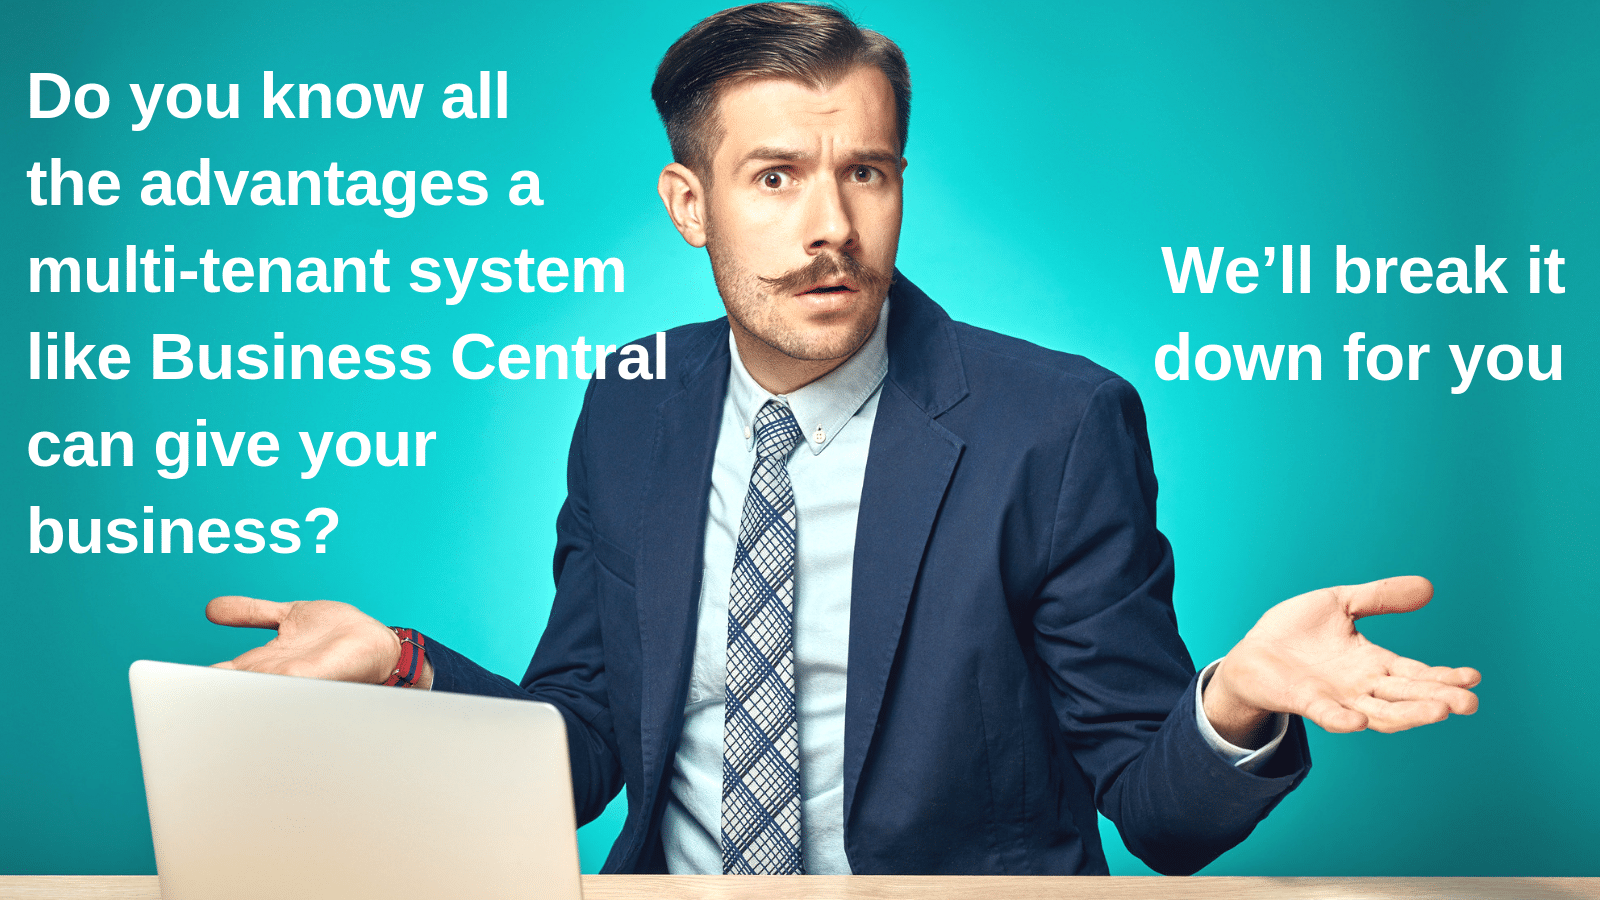 Do you know all the advantages a multi-tenant system like Business Central could give your business? We'll break it down for you.